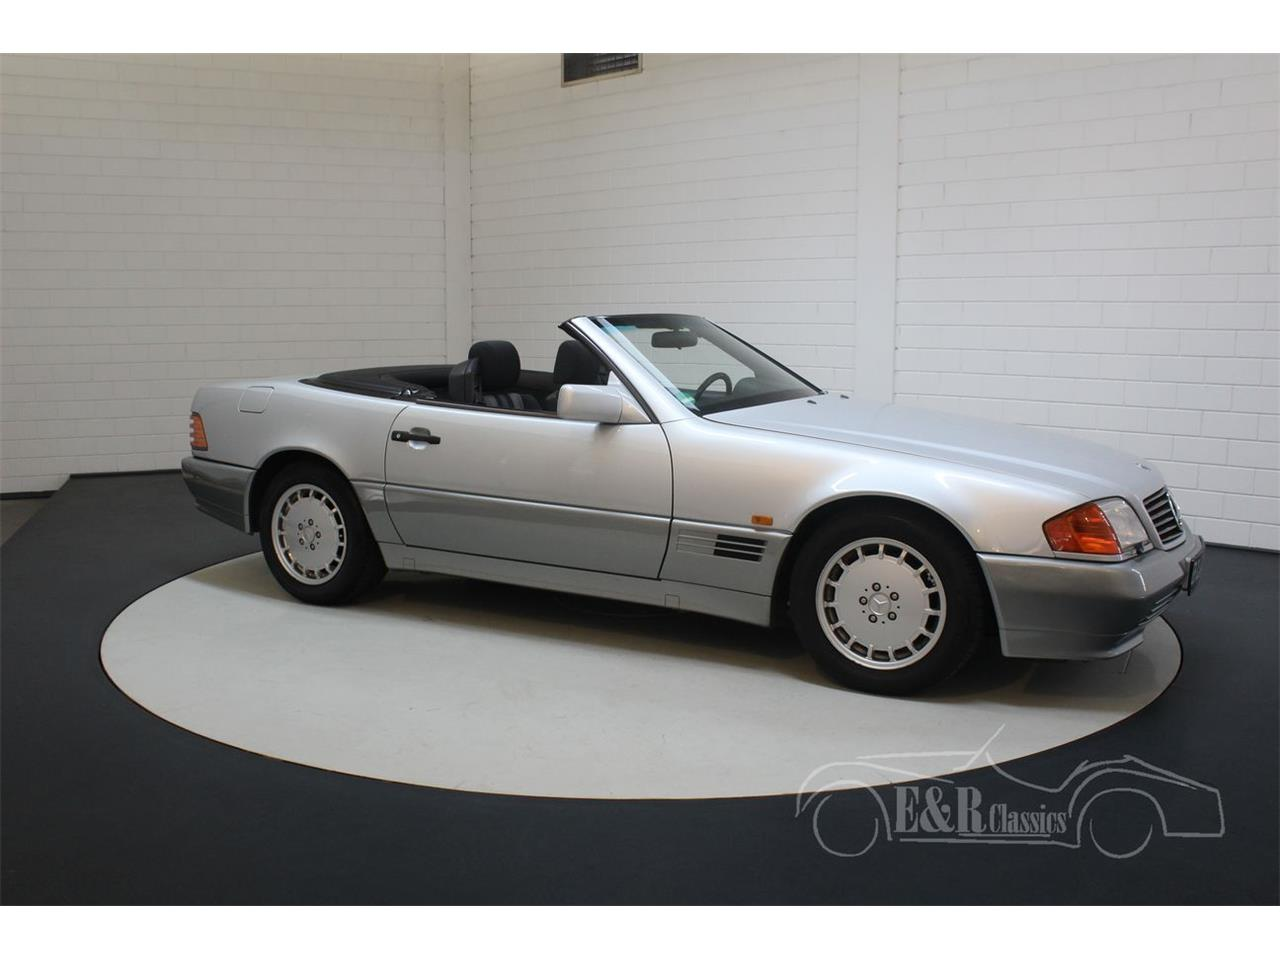 Large Picture of 1991 500SL located in Waalwijk noord brabant - $22,350.00 - Q33D